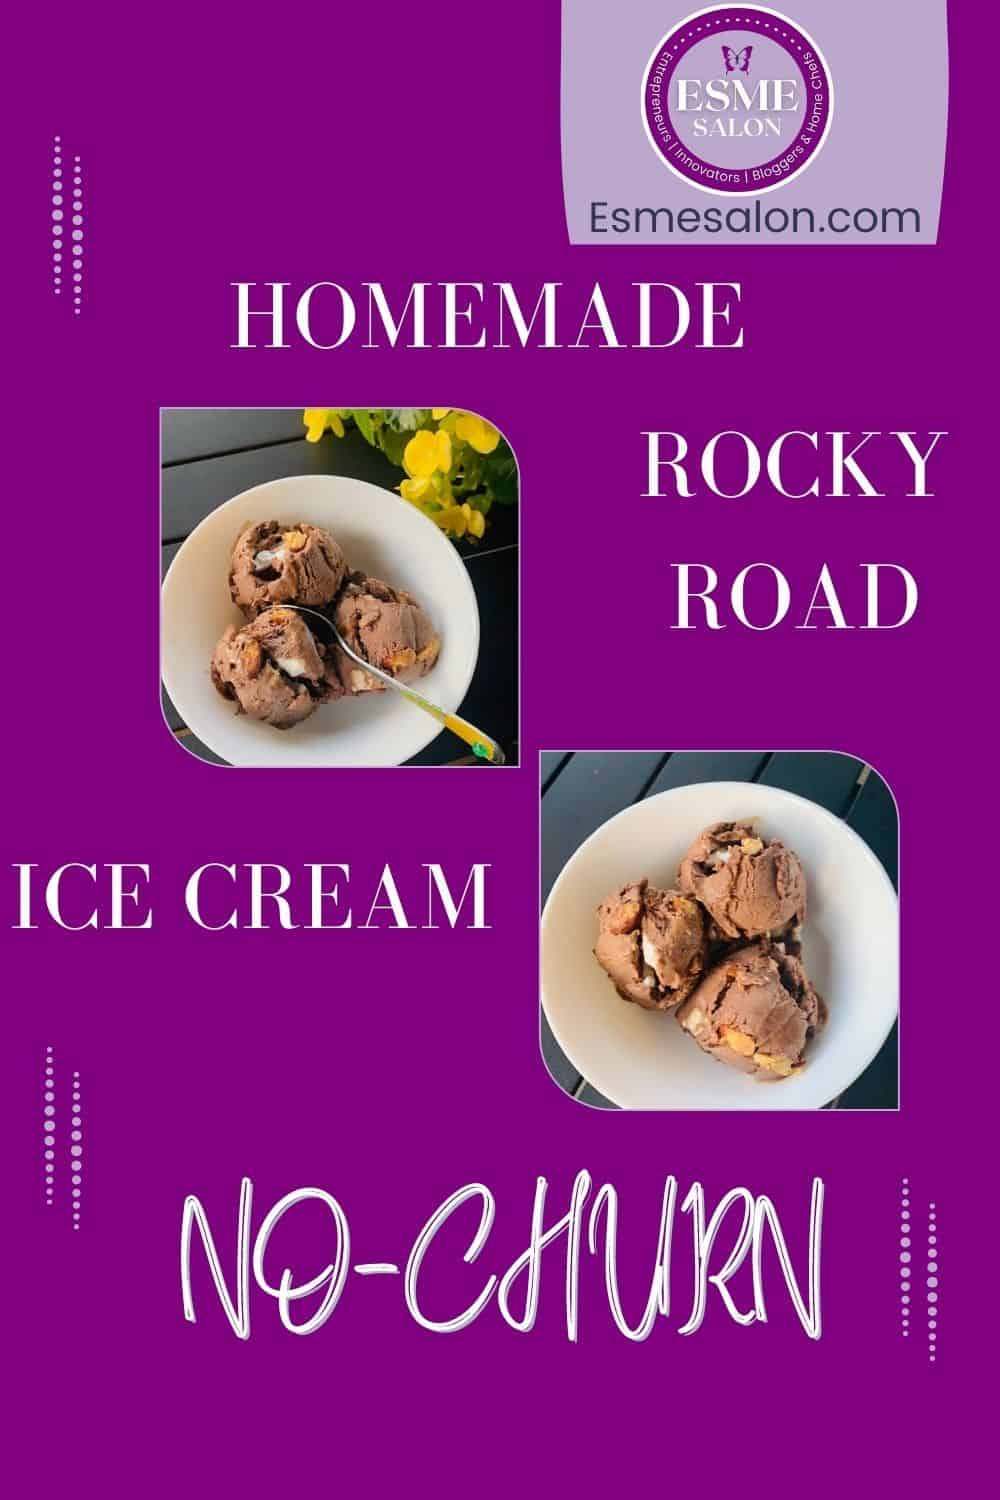 Two bowls with three scoops of Homemade Rocky Road Ice Cream